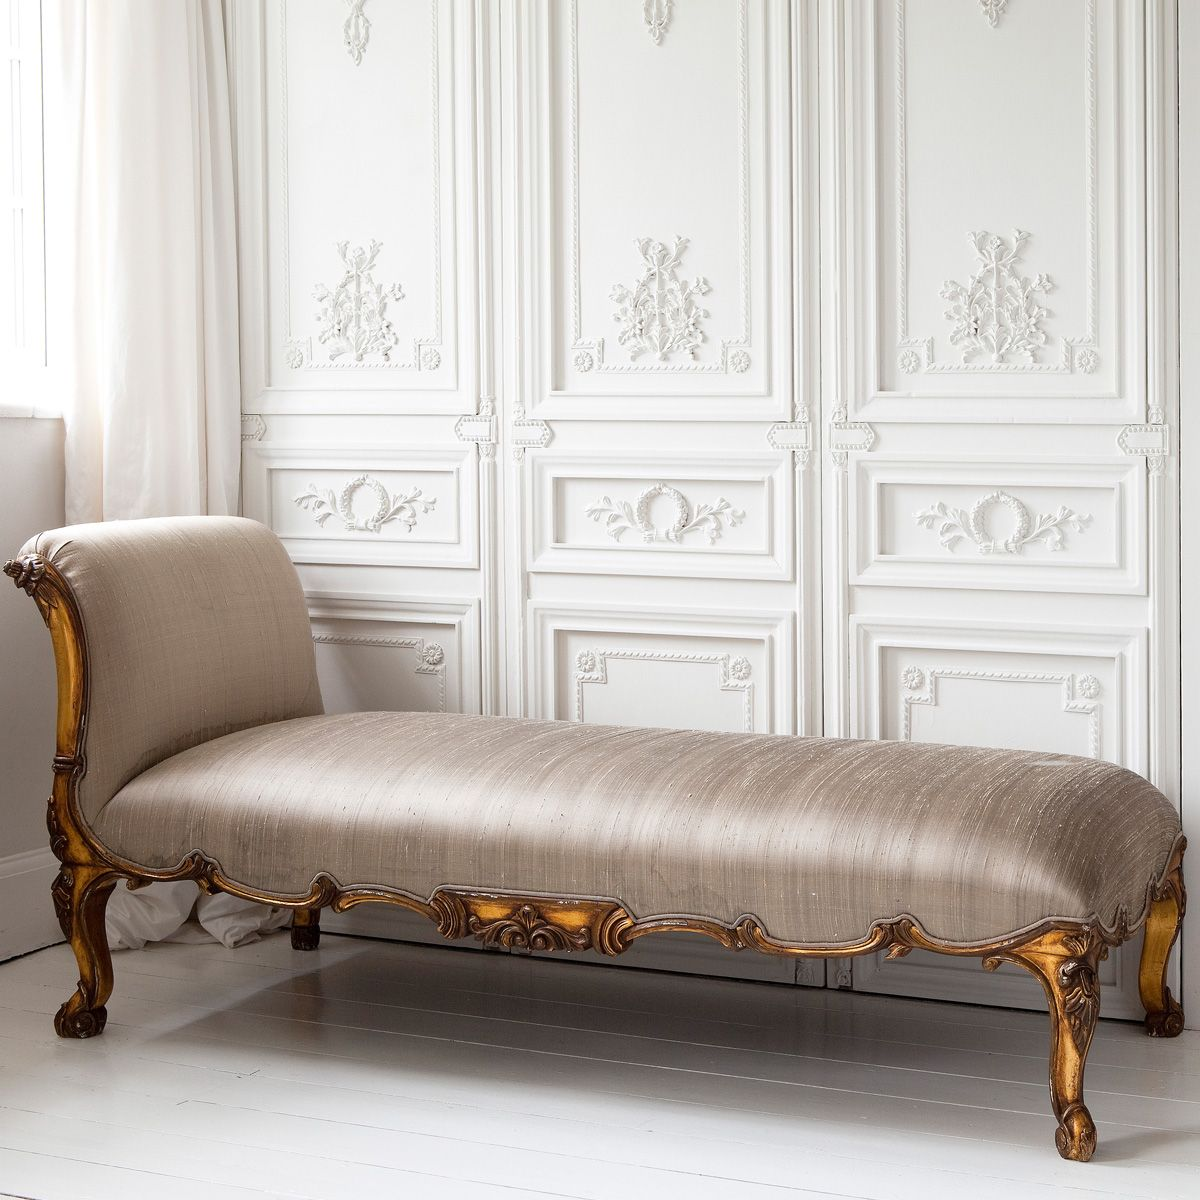 Versailles gold chaise longue french bedrooms chaise for Bedroom loveseat